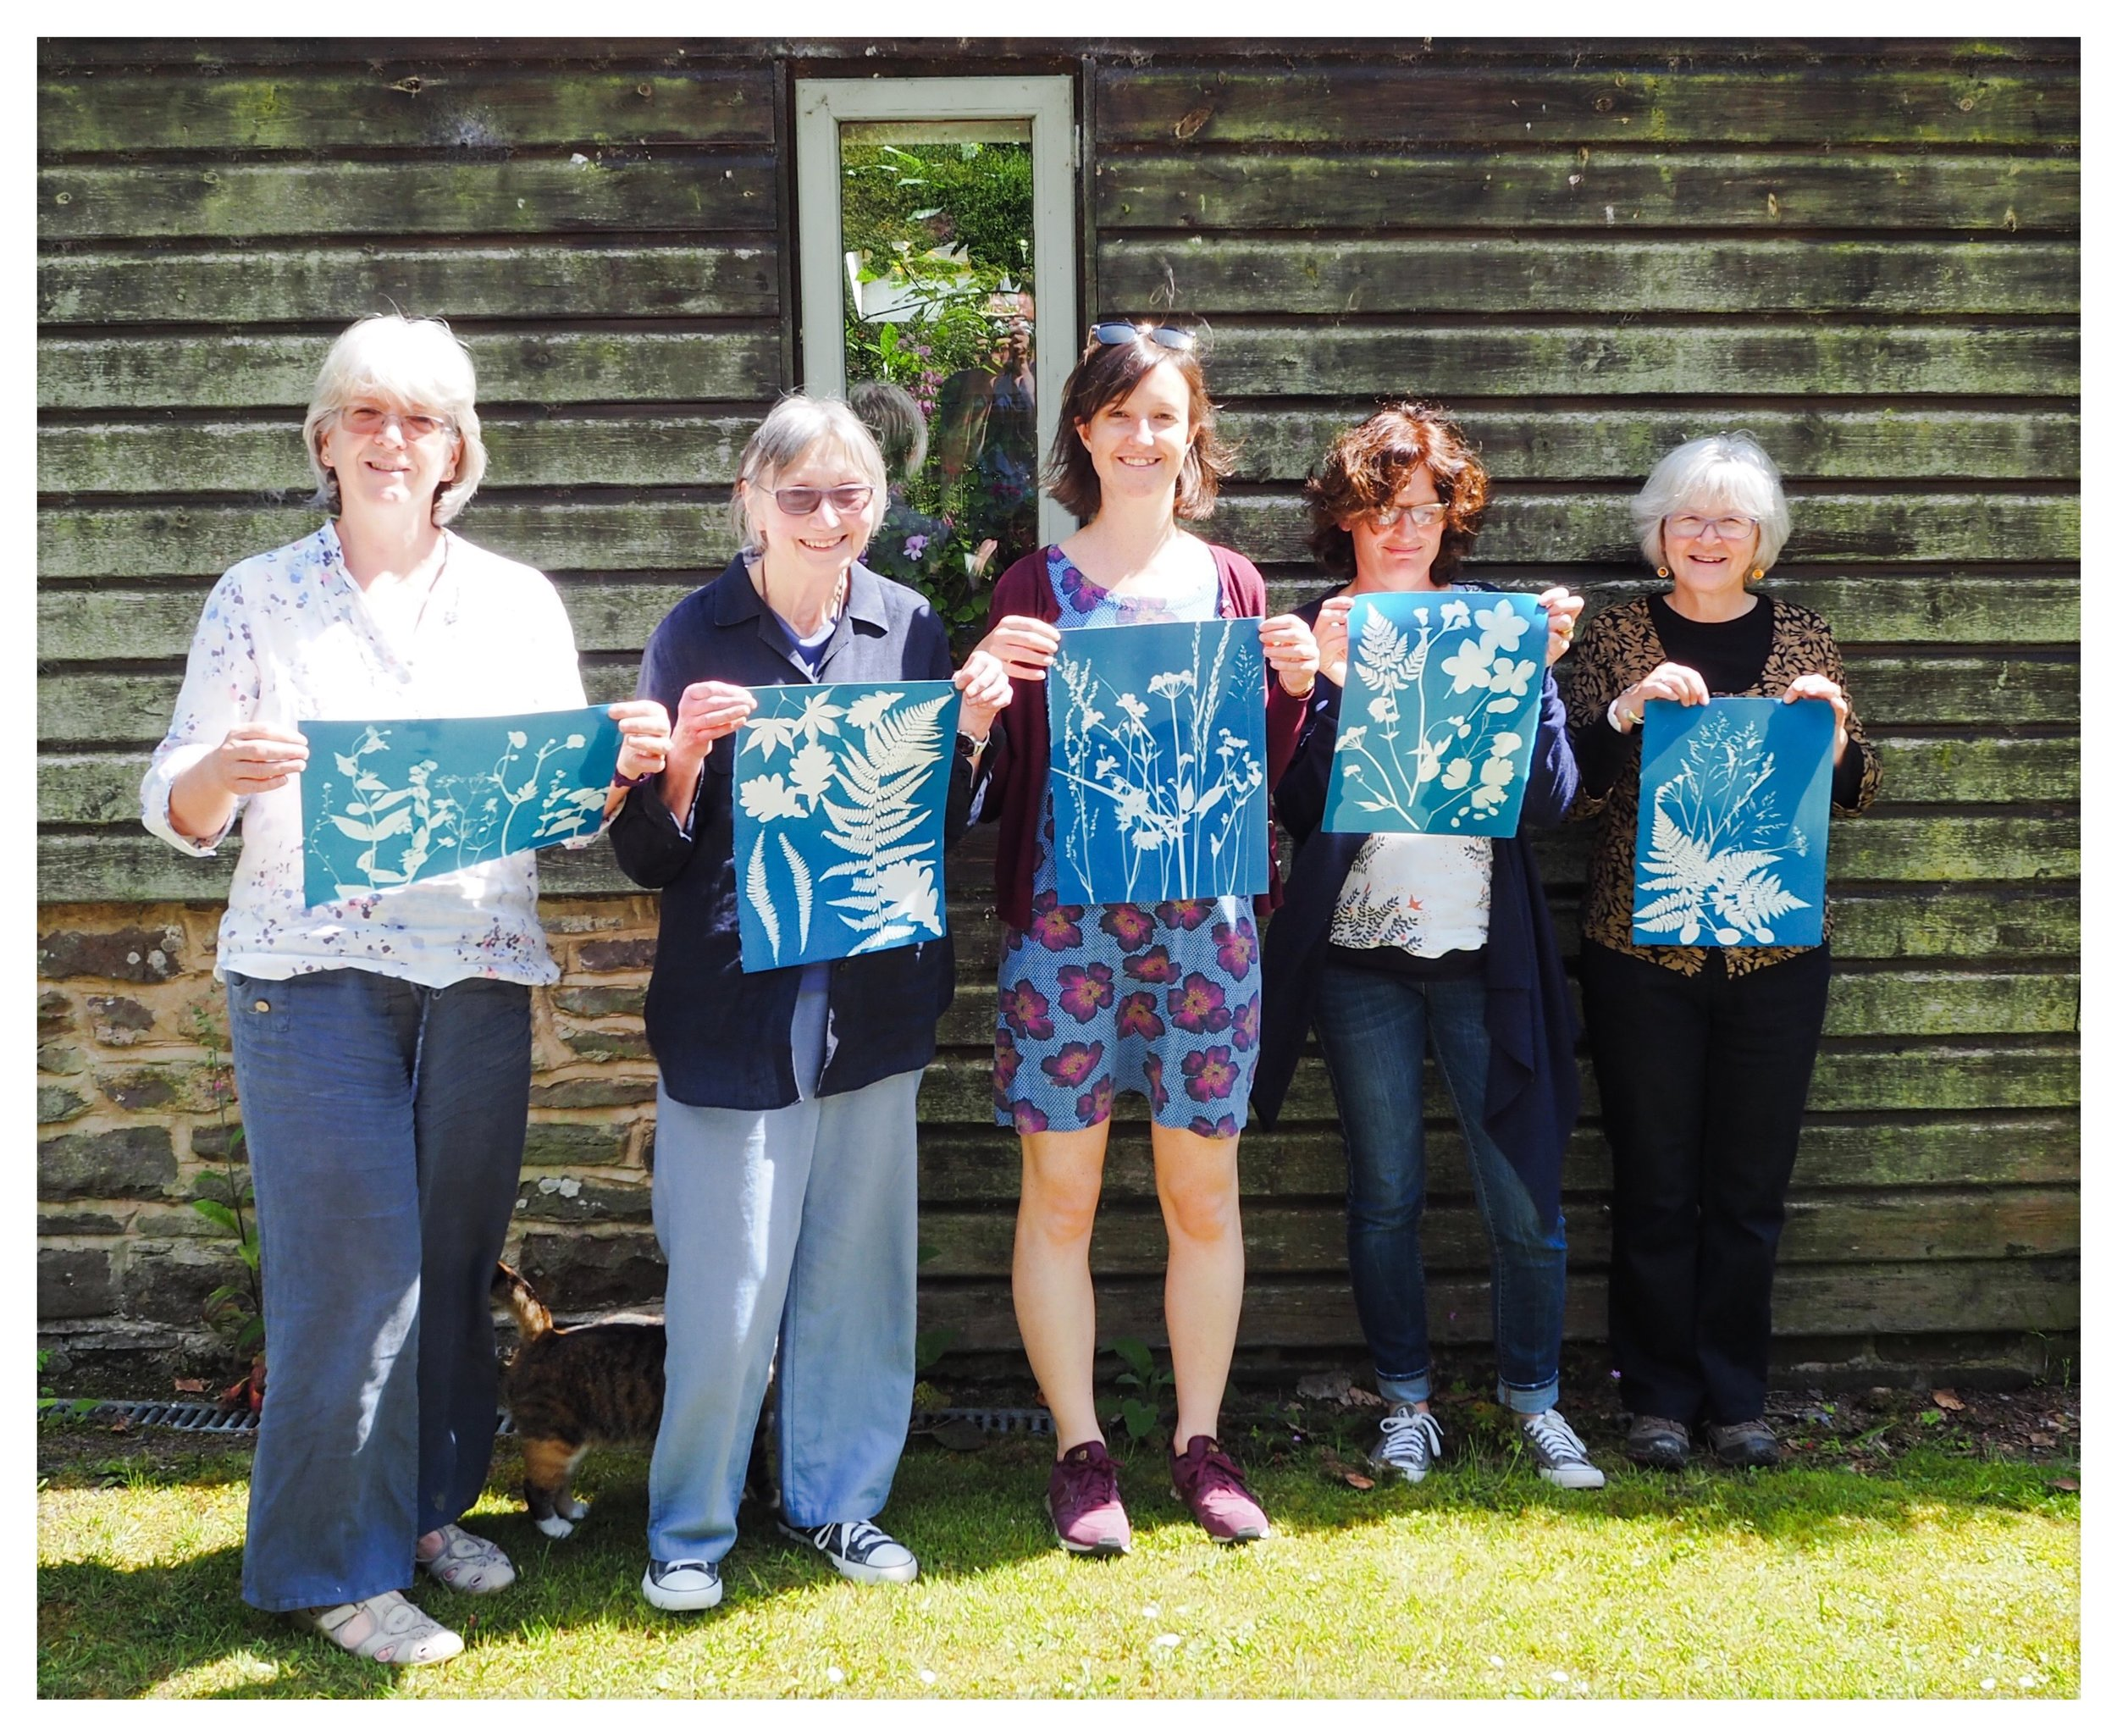 Students with their work from the sun drenched Mid Summer Workshop at Nant y Bedd.